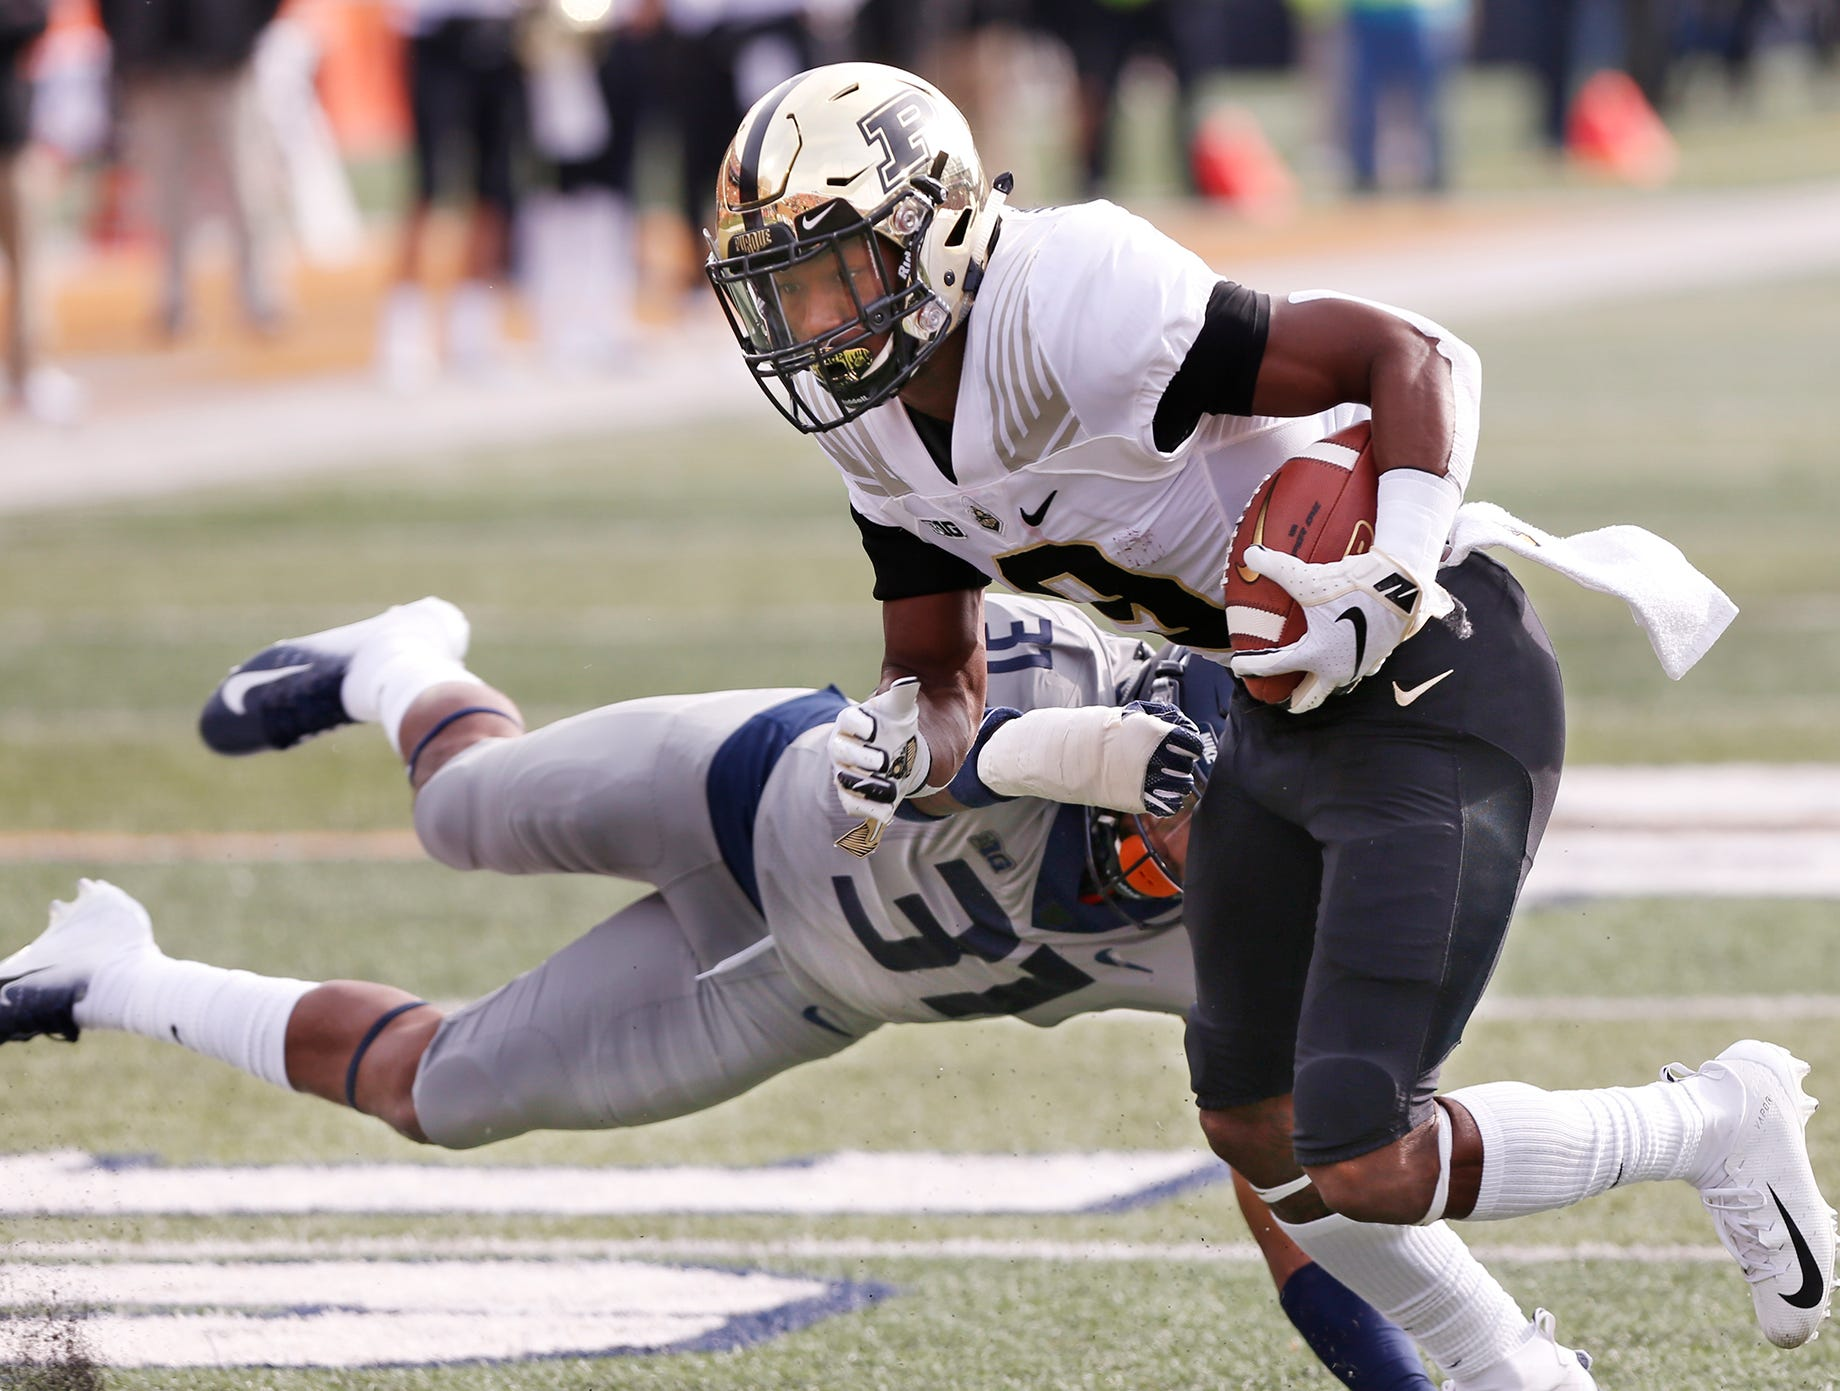 Purdue 46, Illinois 7: Grading the Boilermakers